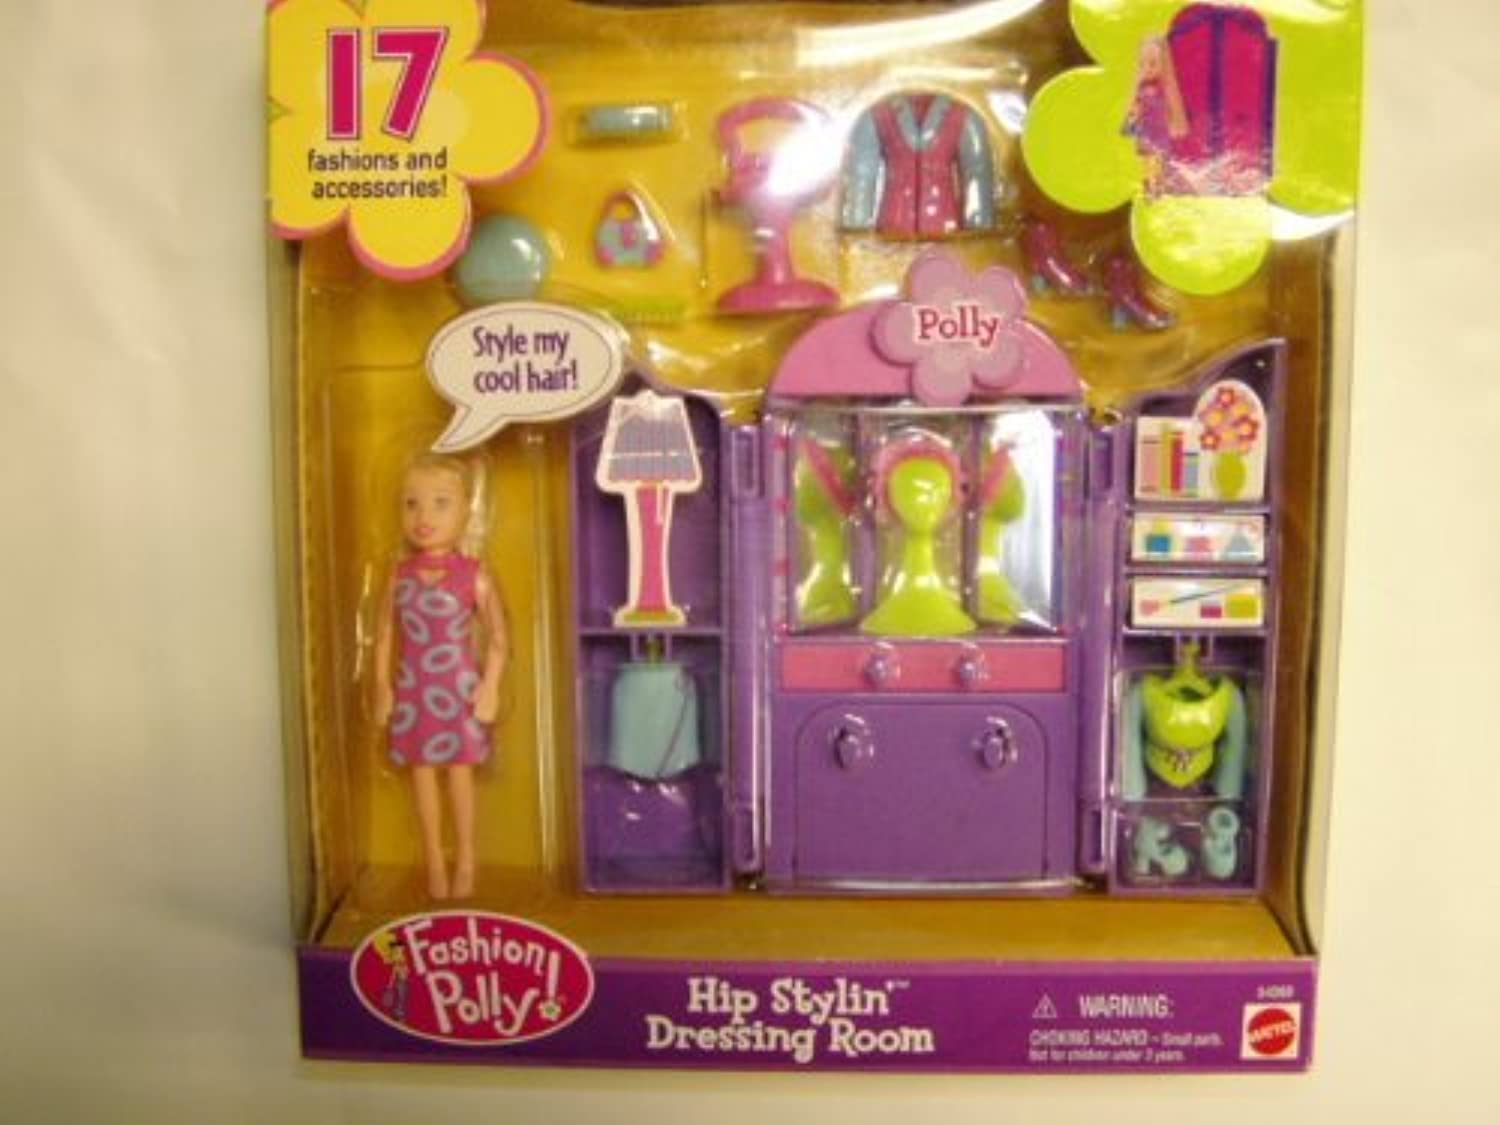 Fashion Polly Hip Stylin' Dressing Room  Polly  by Mattel